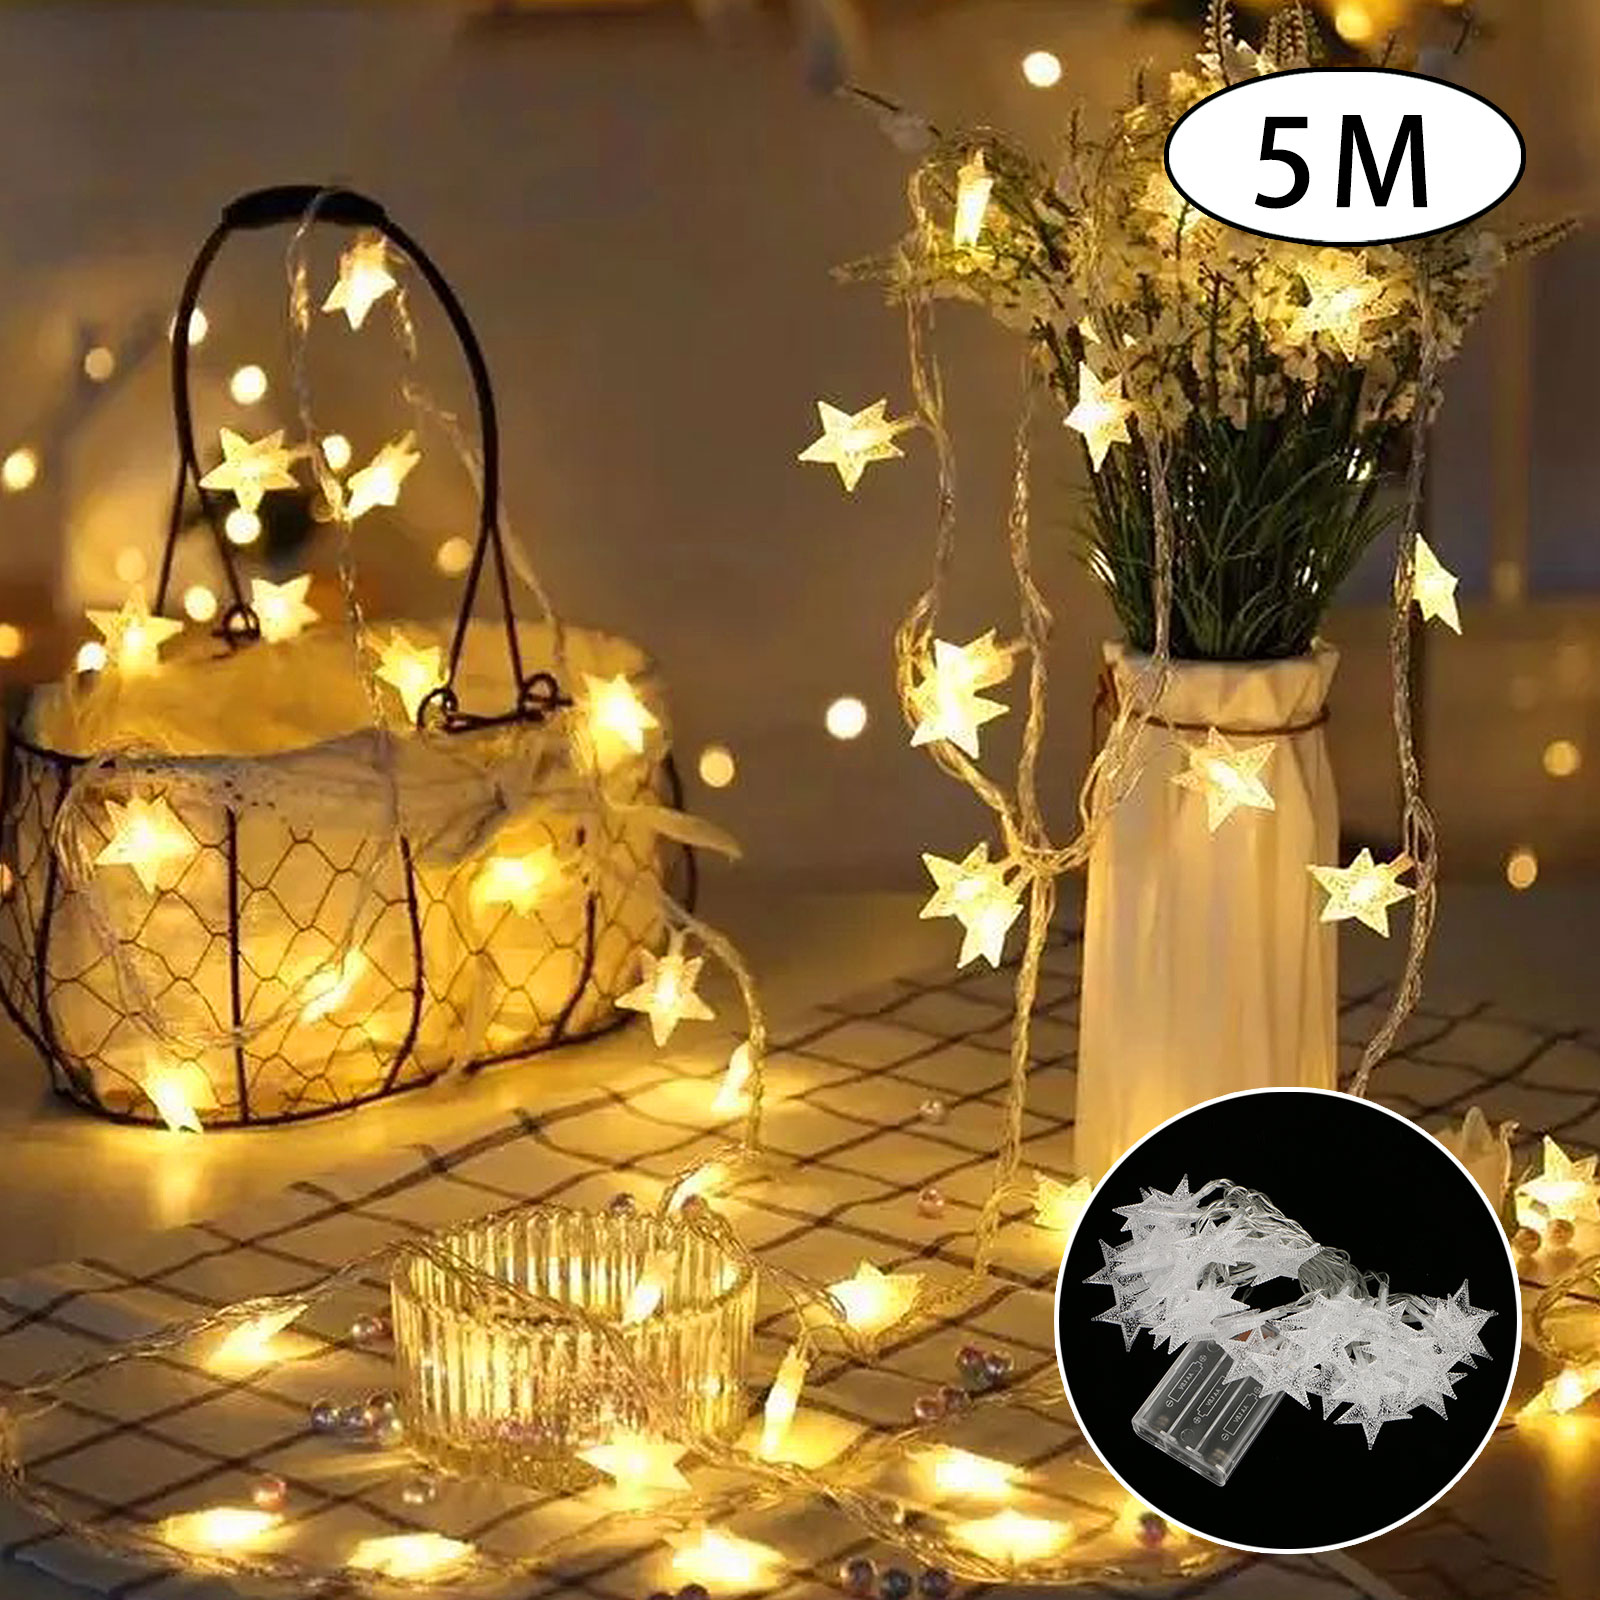 5M LED String Star Fairy Lights Battery Operated Waterproof Lamps for Bedroom Wedding Christmas Decor Warm White